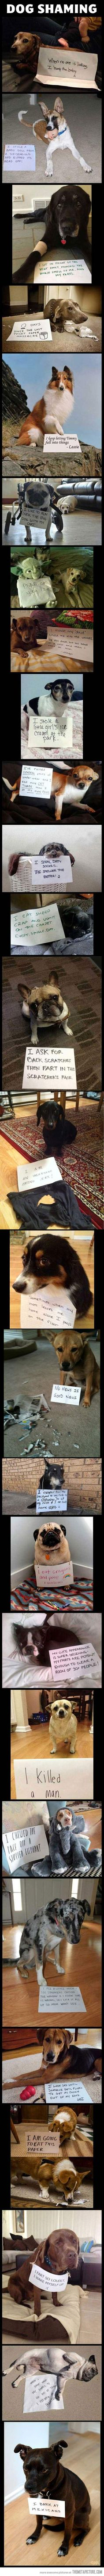 The ultimate dog shaming compilation… the last one killed me though